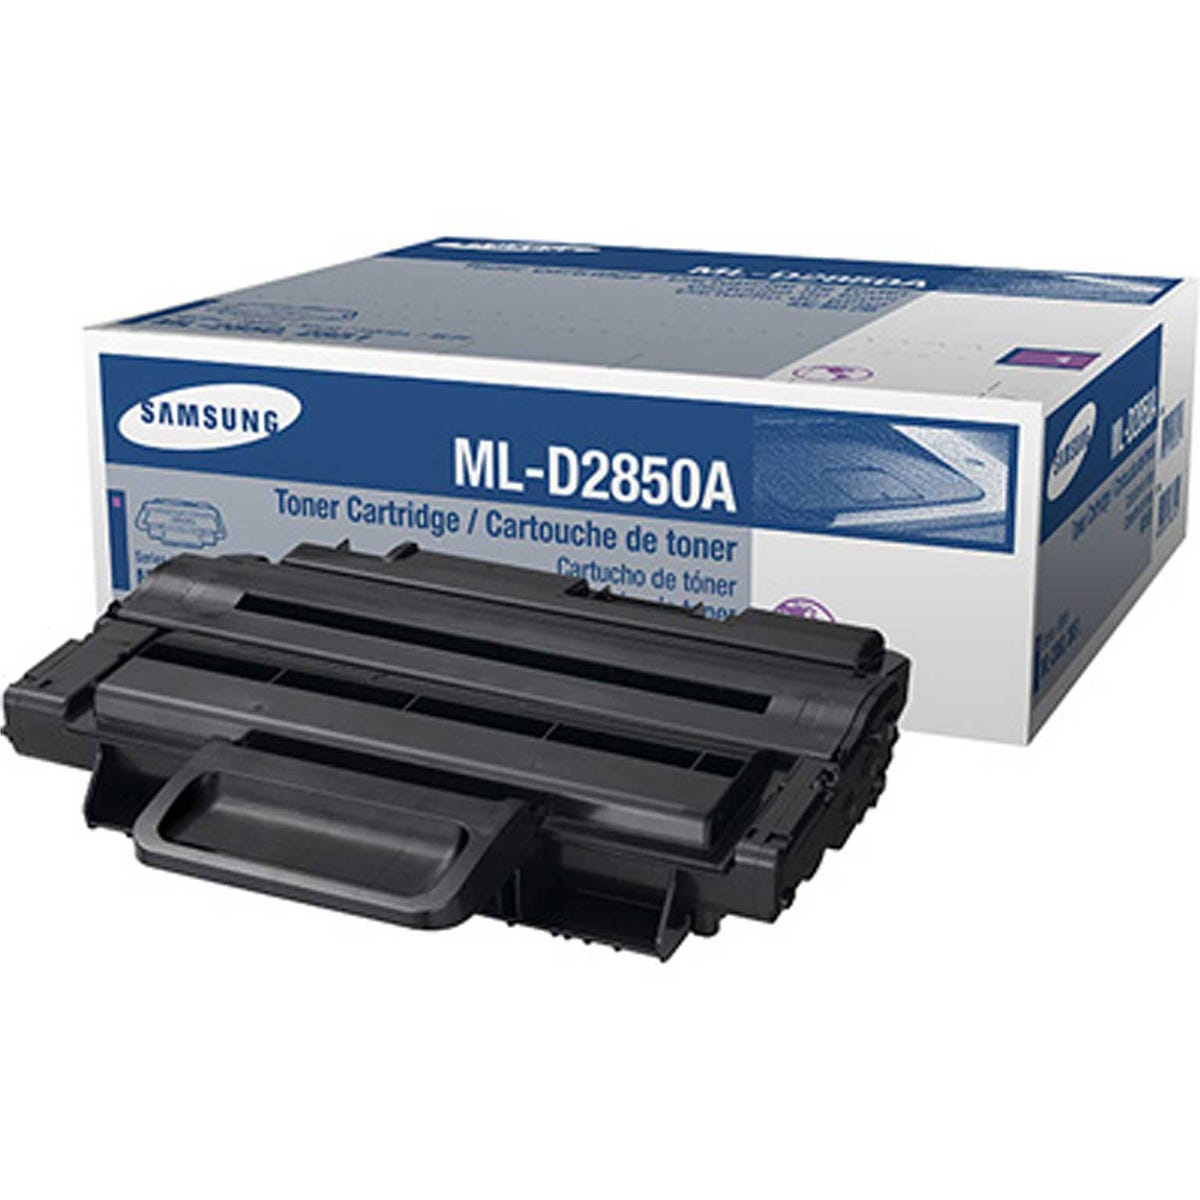 Image of Samsung ML-D2850A Printer Ink Toner Cartridge, Black